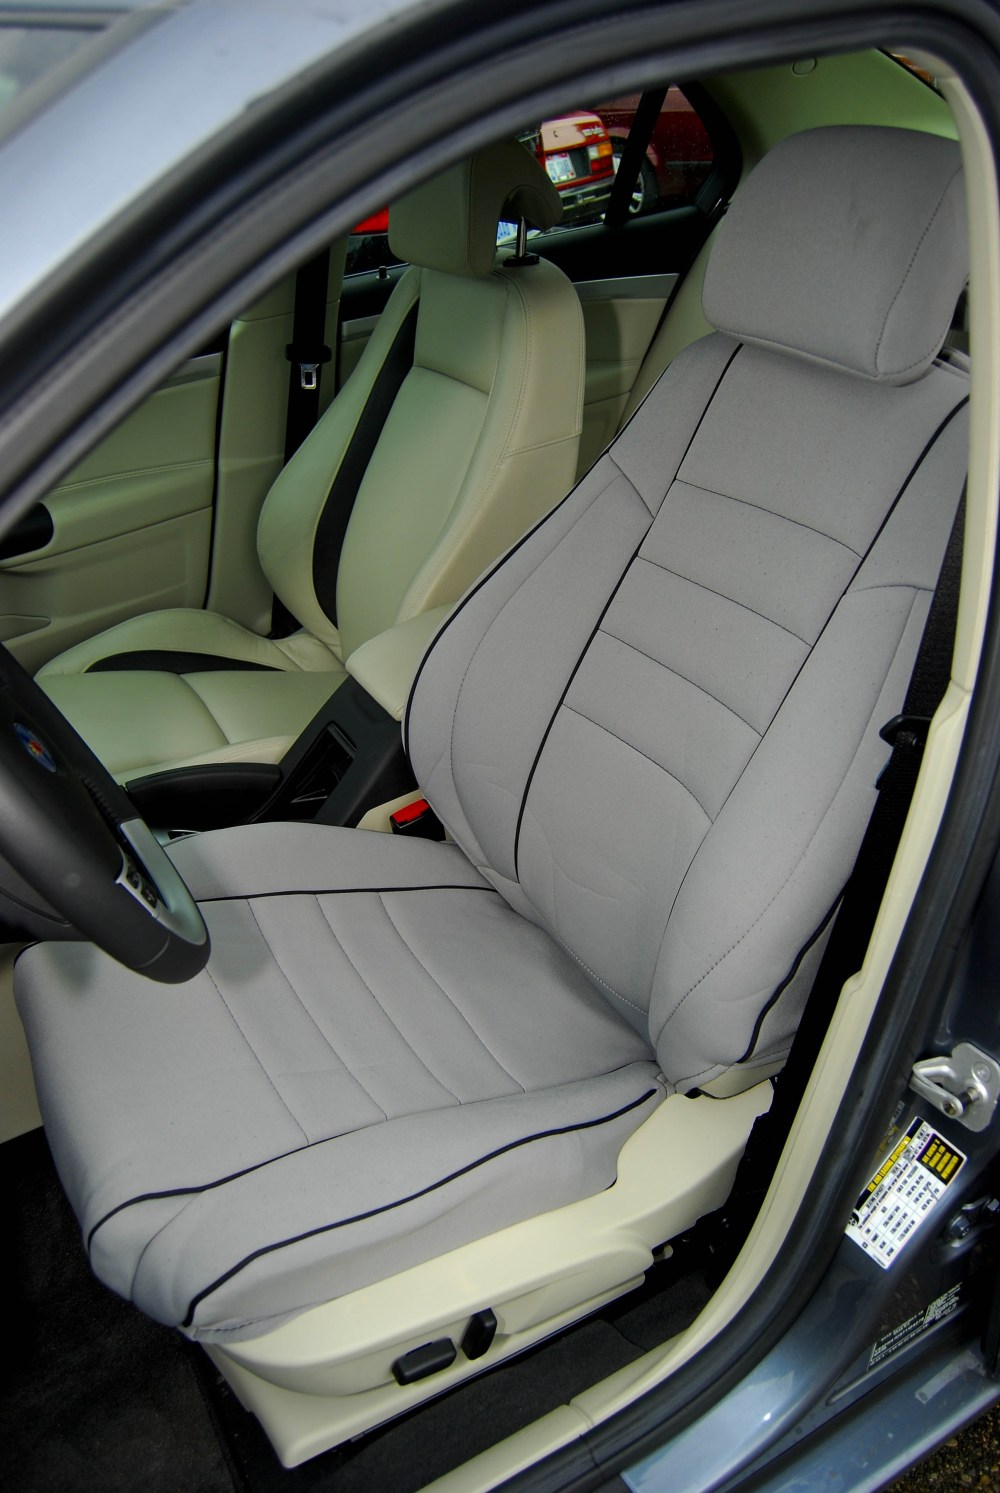 medium resolution of  2007 9 3ss 21 grey driver s seat example